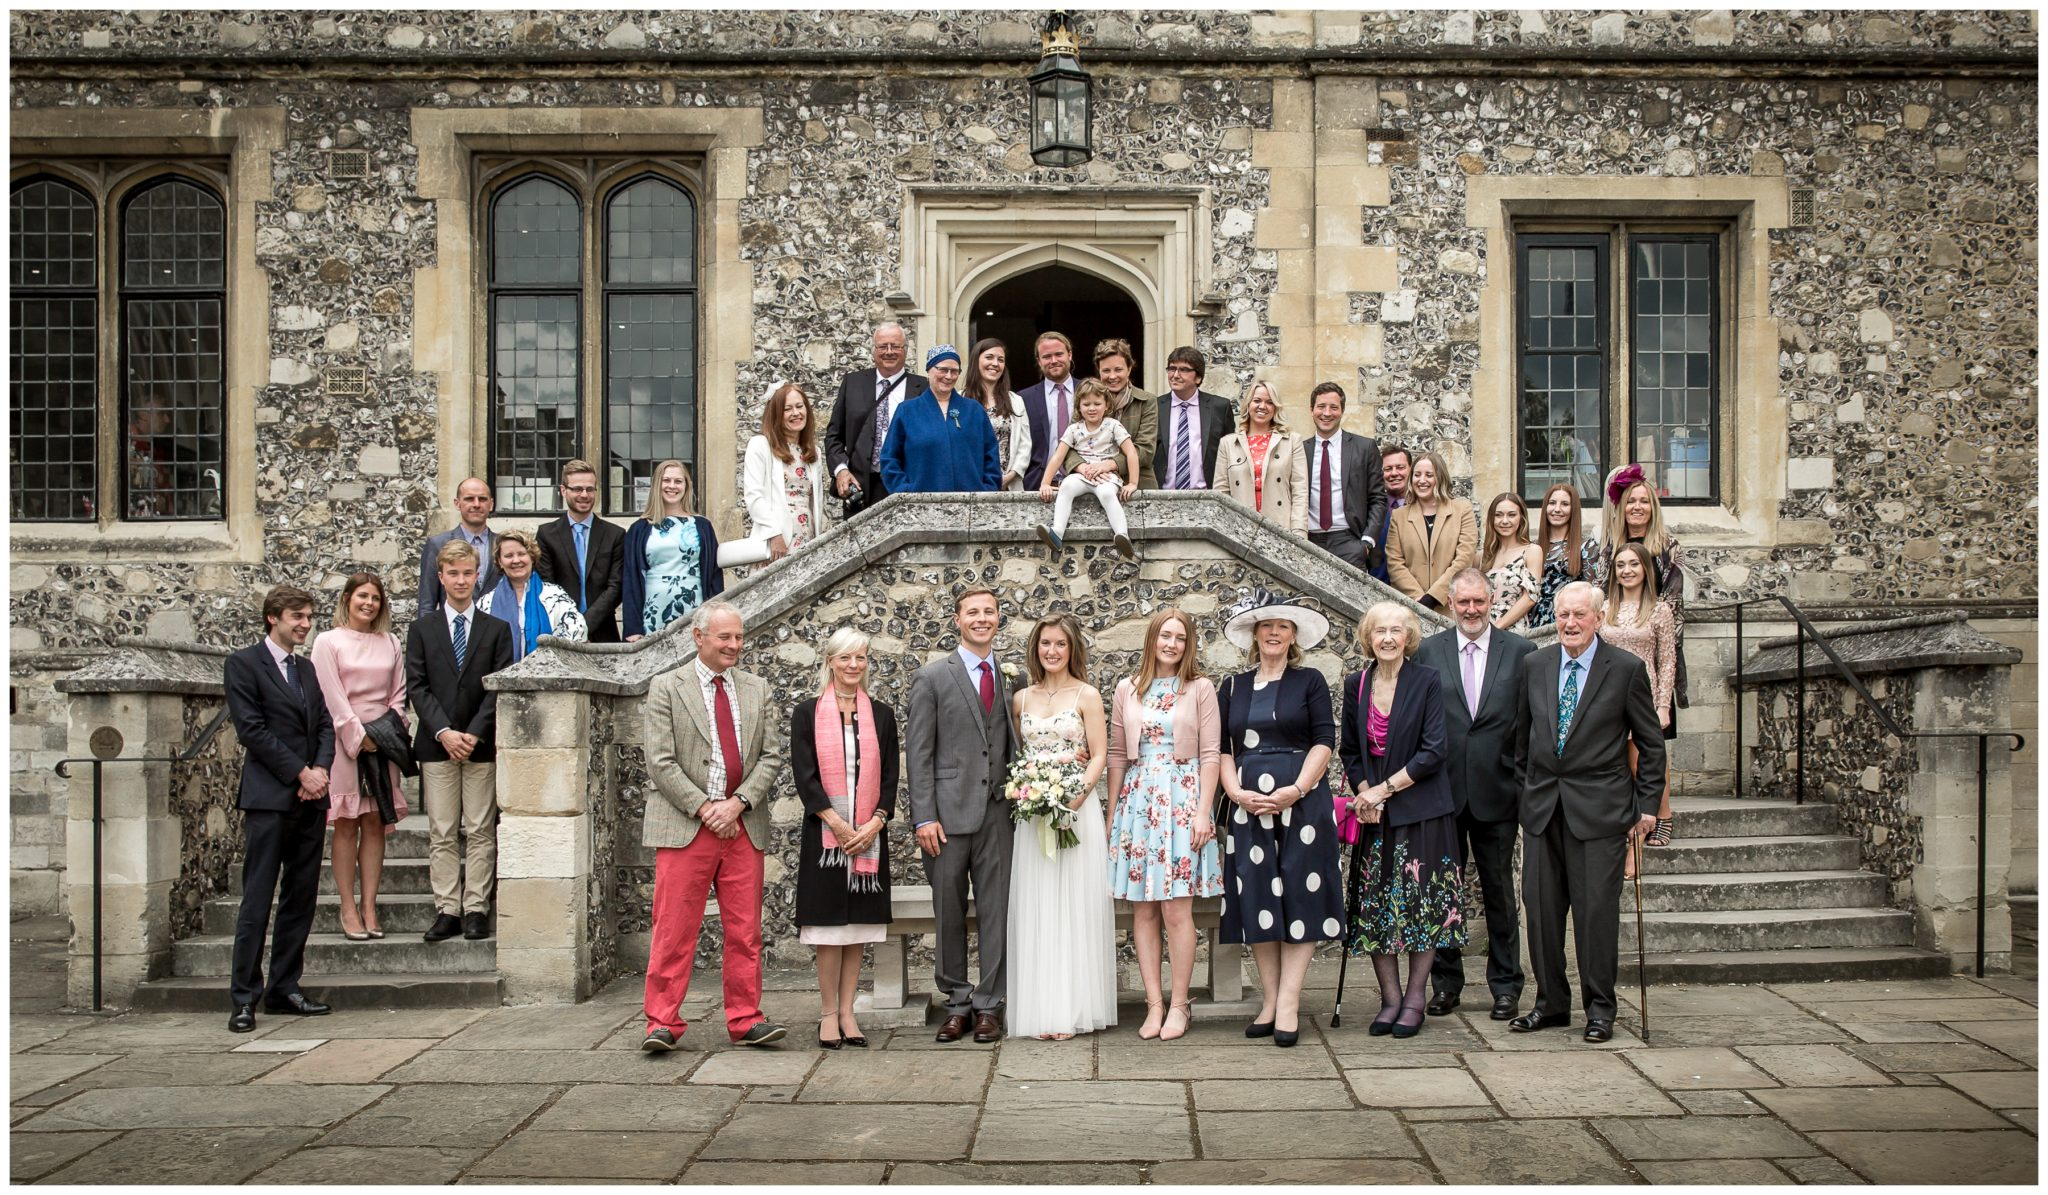 Family group photograph on steps outside Winchester Great Hall